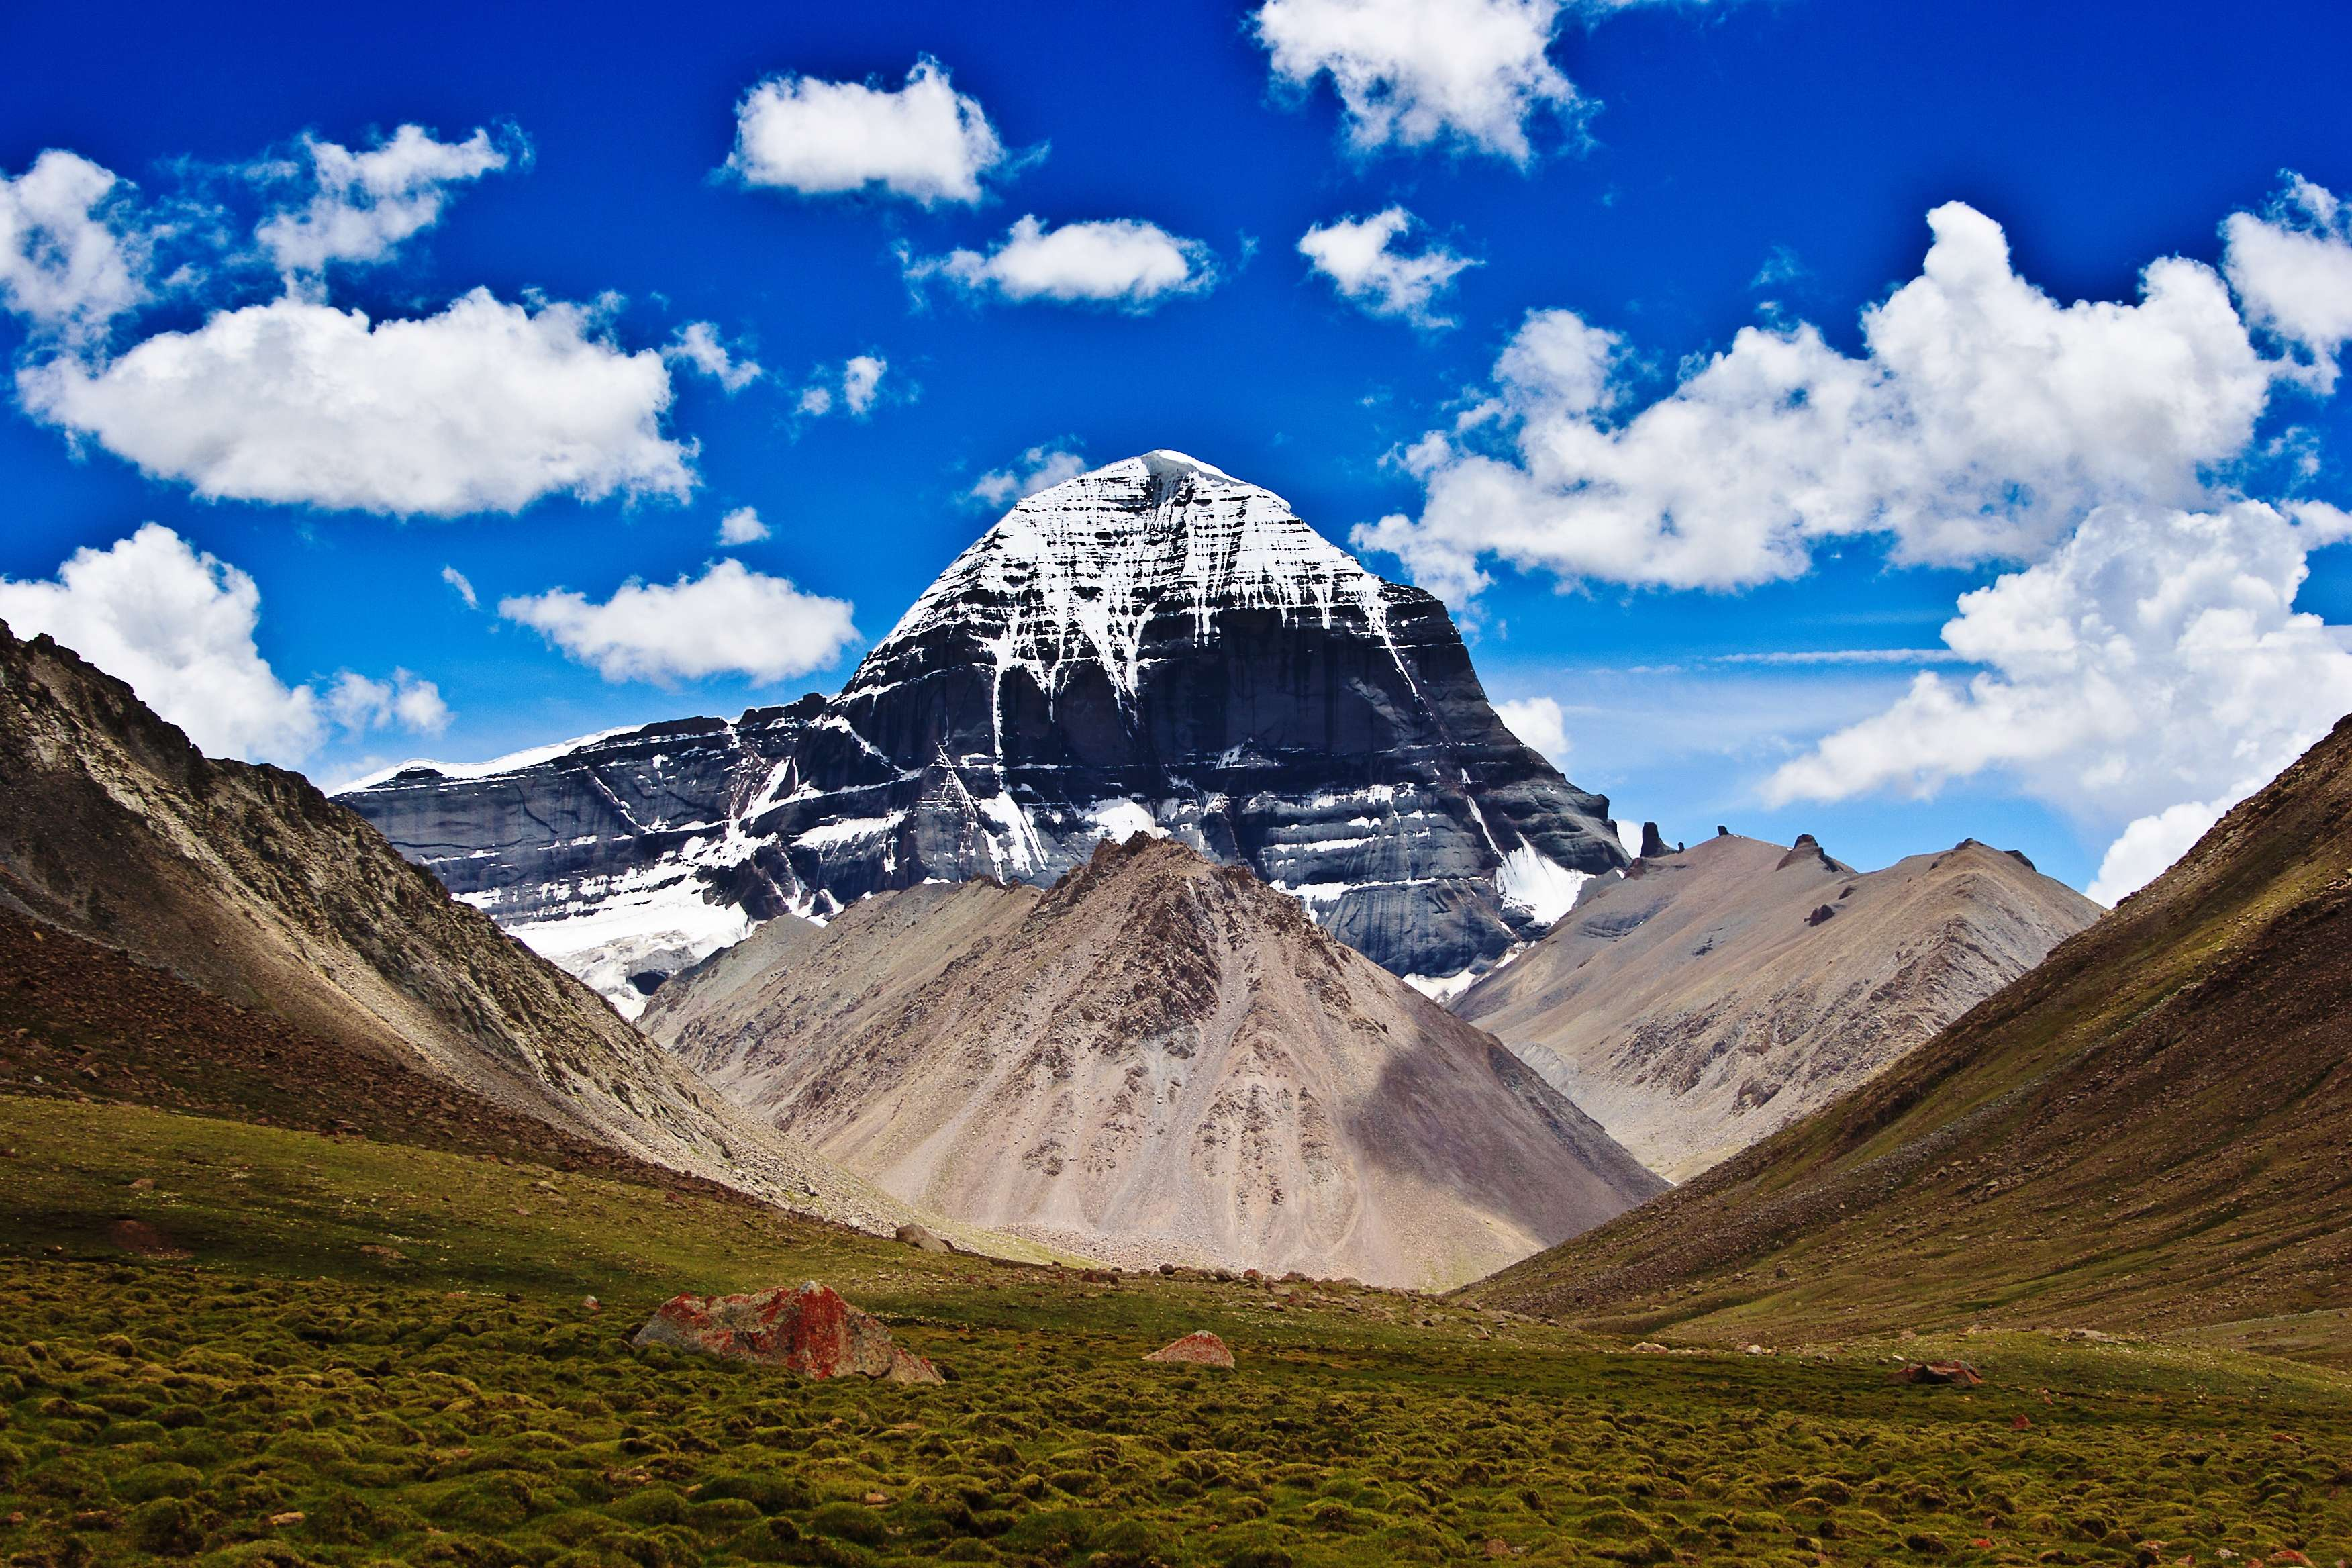 Kailash Manasarovar by Helicopter 2019